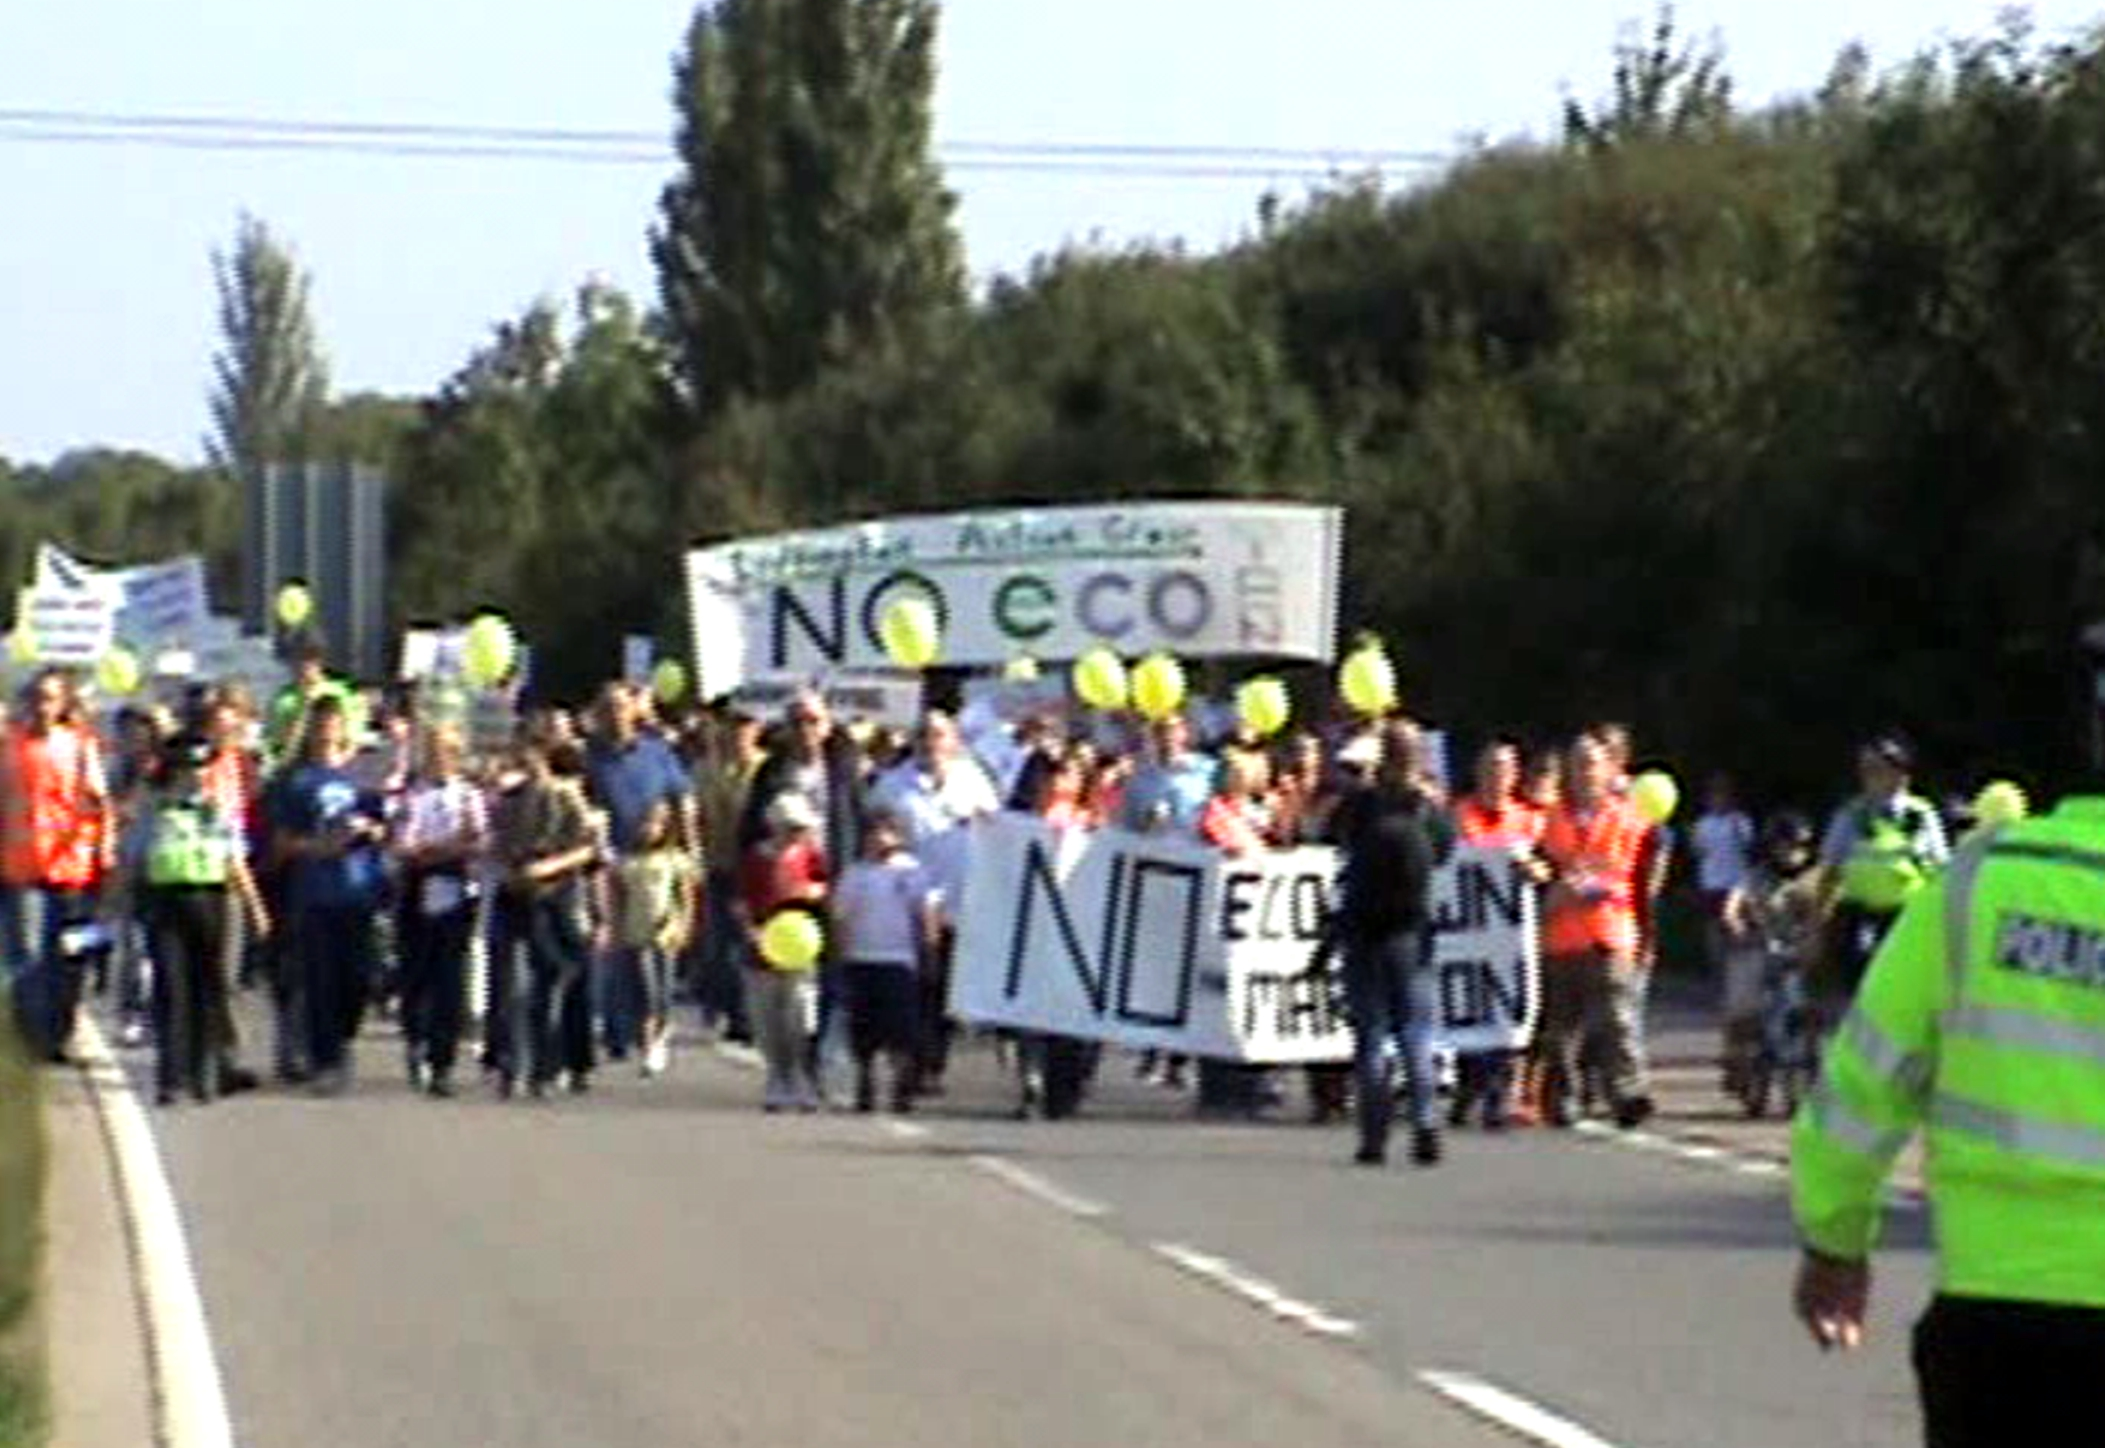 MMETAG March on A421